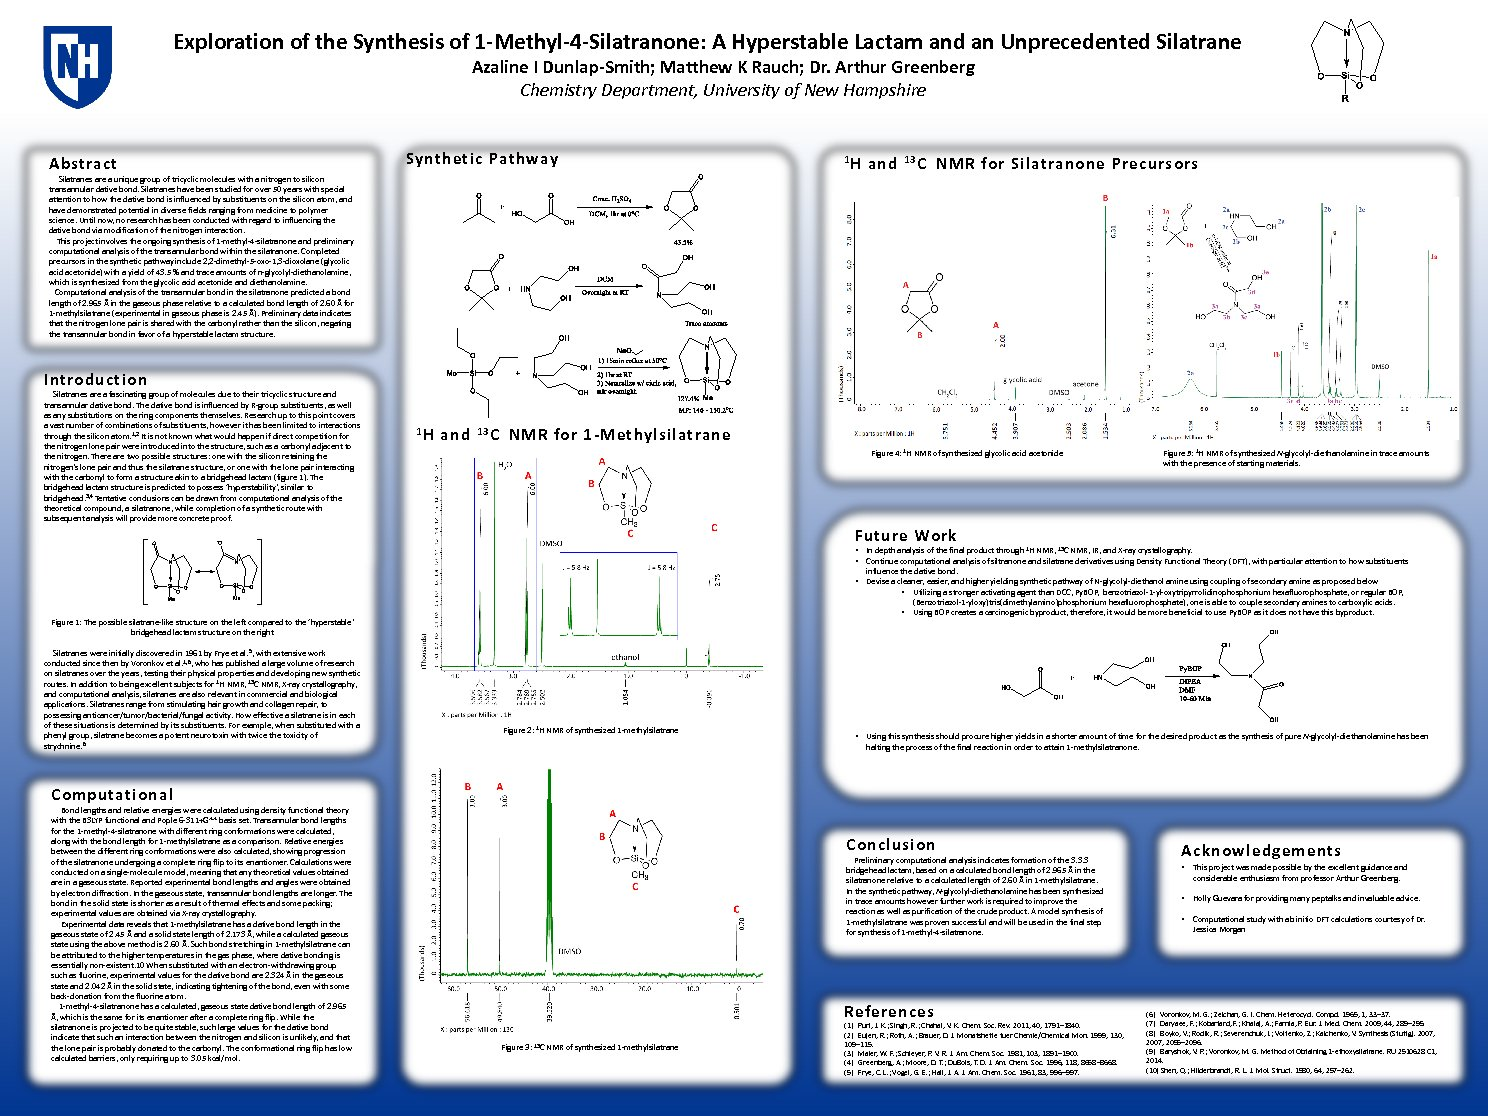 Exploration Of The Synthesis Of 1-Methyl-4-Silatranone: A Hyperstable Lactam And Unprecedented Silatrane by aiw23